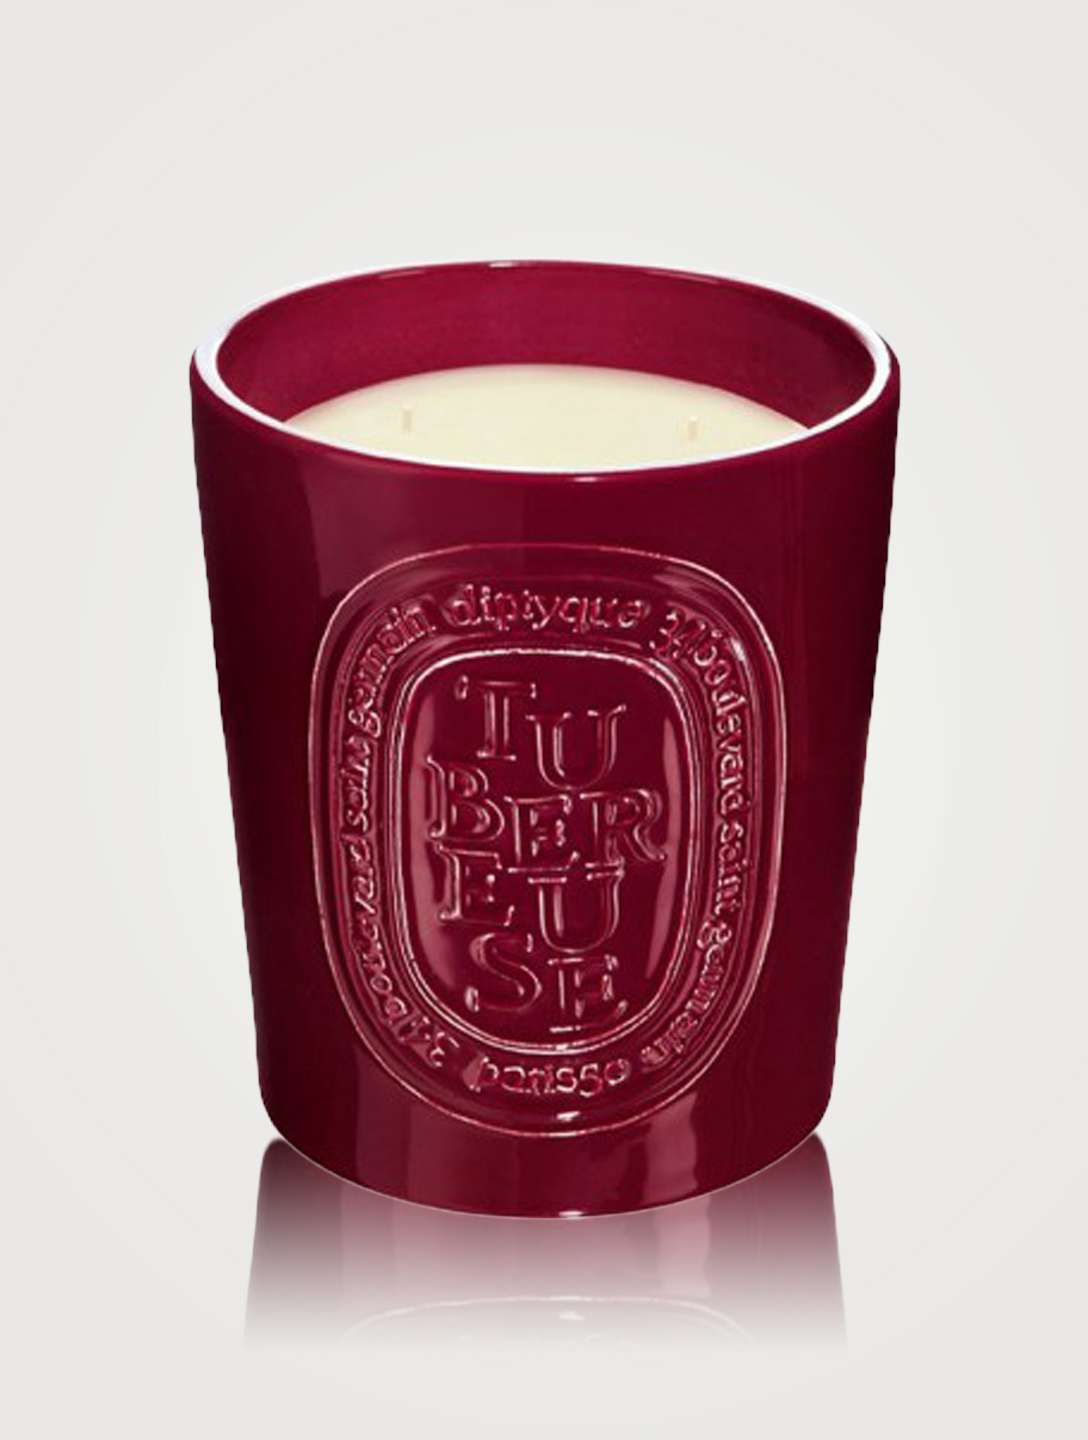 DIPTYQUE Tuberose Indoor/Outdoor Candle Beauty